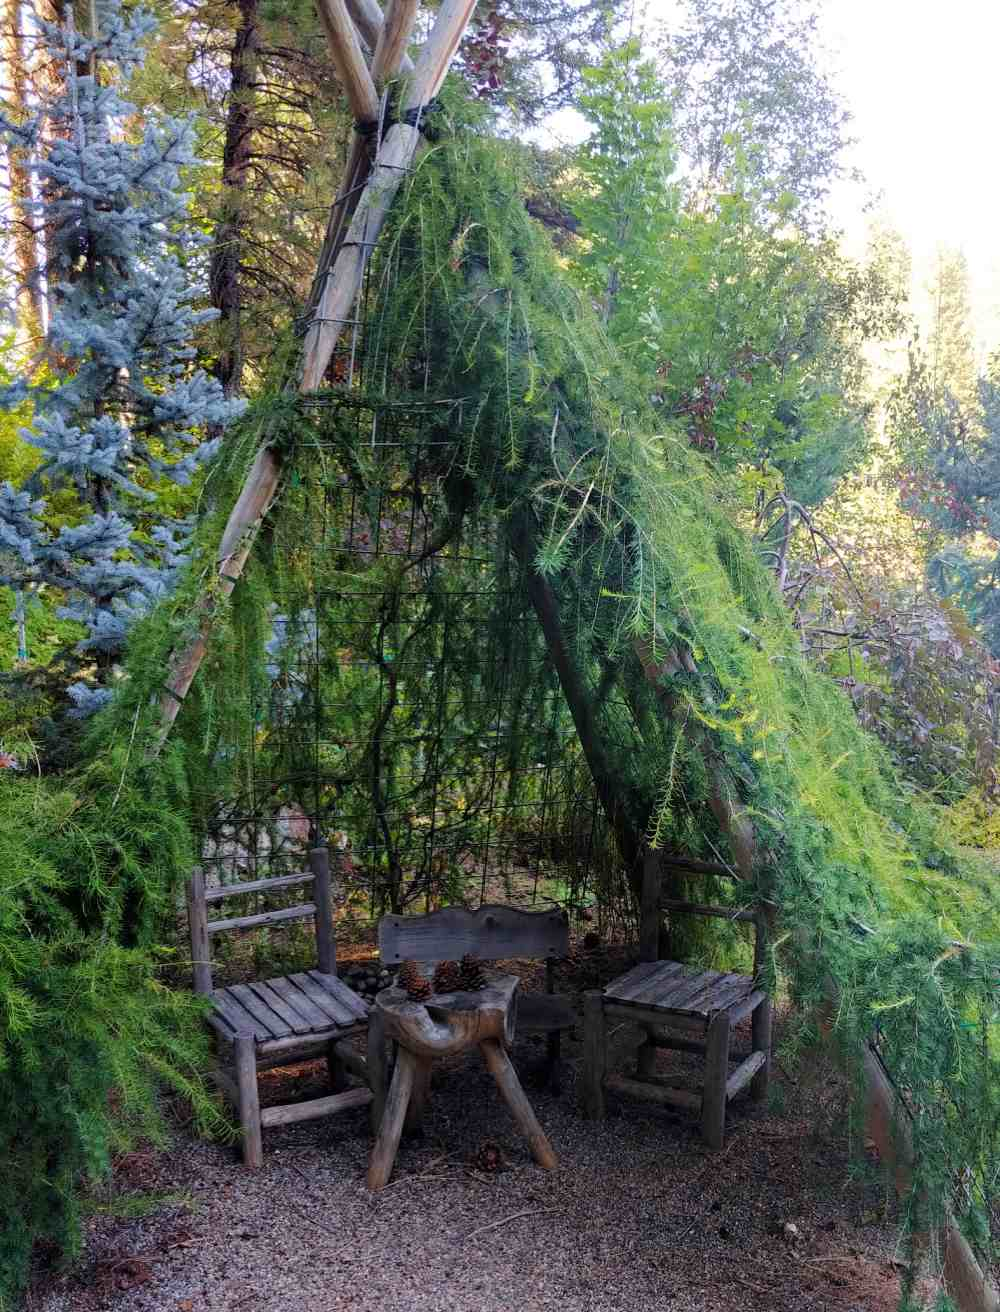 Wigwam made from living branches.